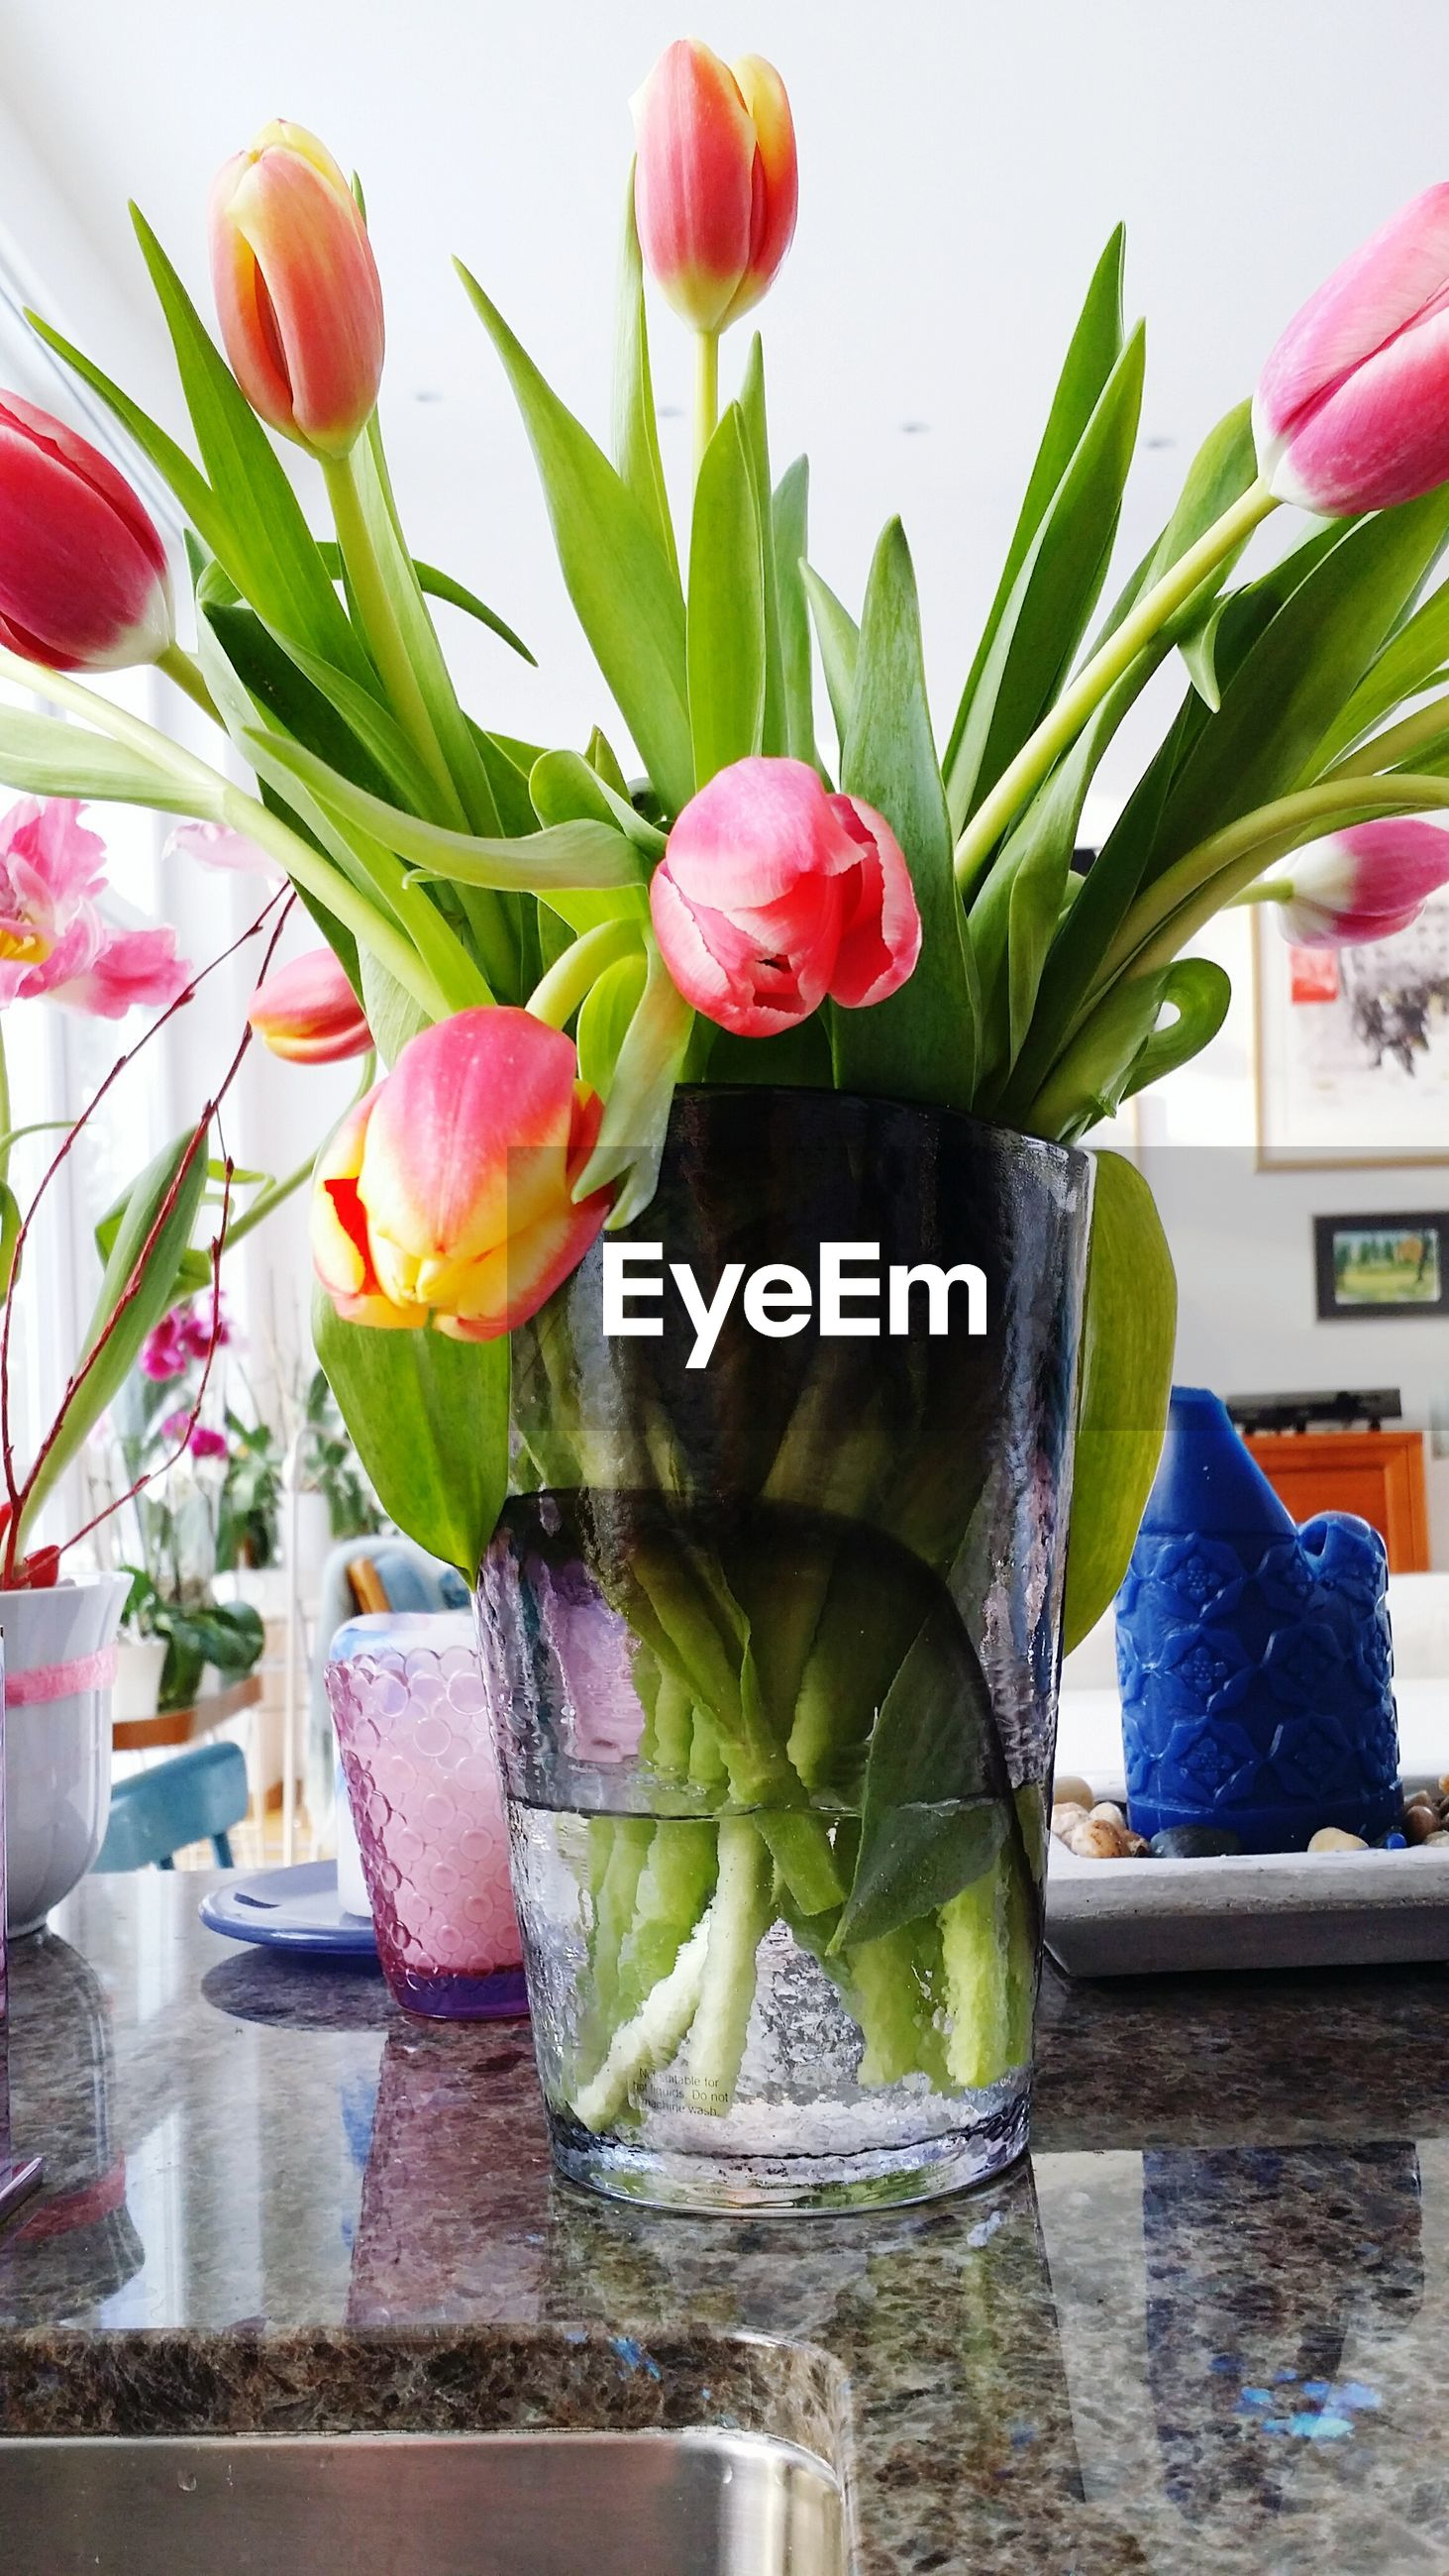 flower, freshness, vase, fragility, indoors, potted plant, leaf, plant, growth, decoration, petal, wall - building feature, nature, flower arrangement, close-up, glass - material, flower pot, beauty in nature, stem, red